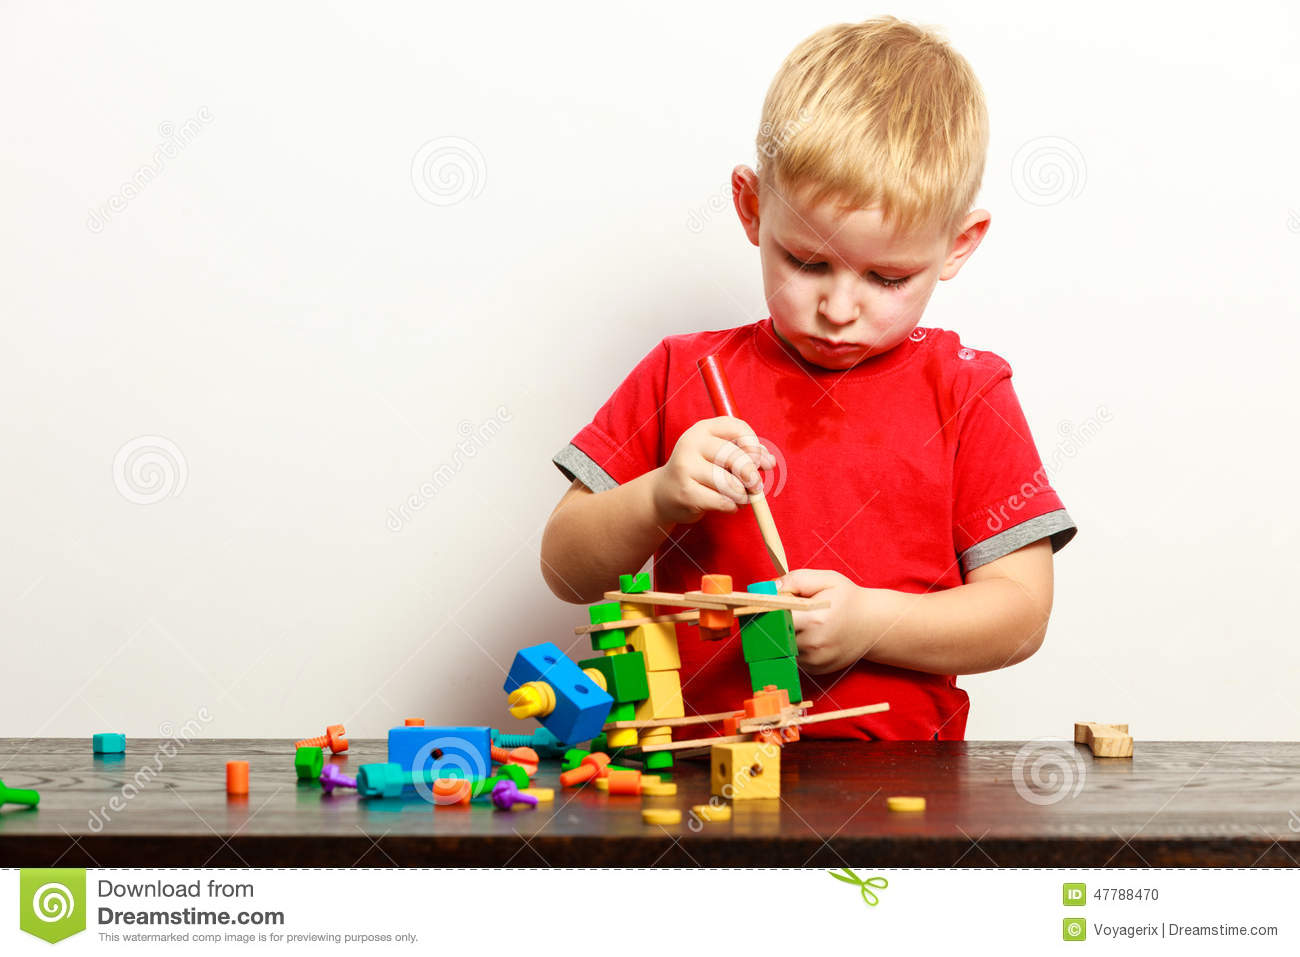 Building Toys For Little Boys : Little boy playing with construction toy blocks royalty